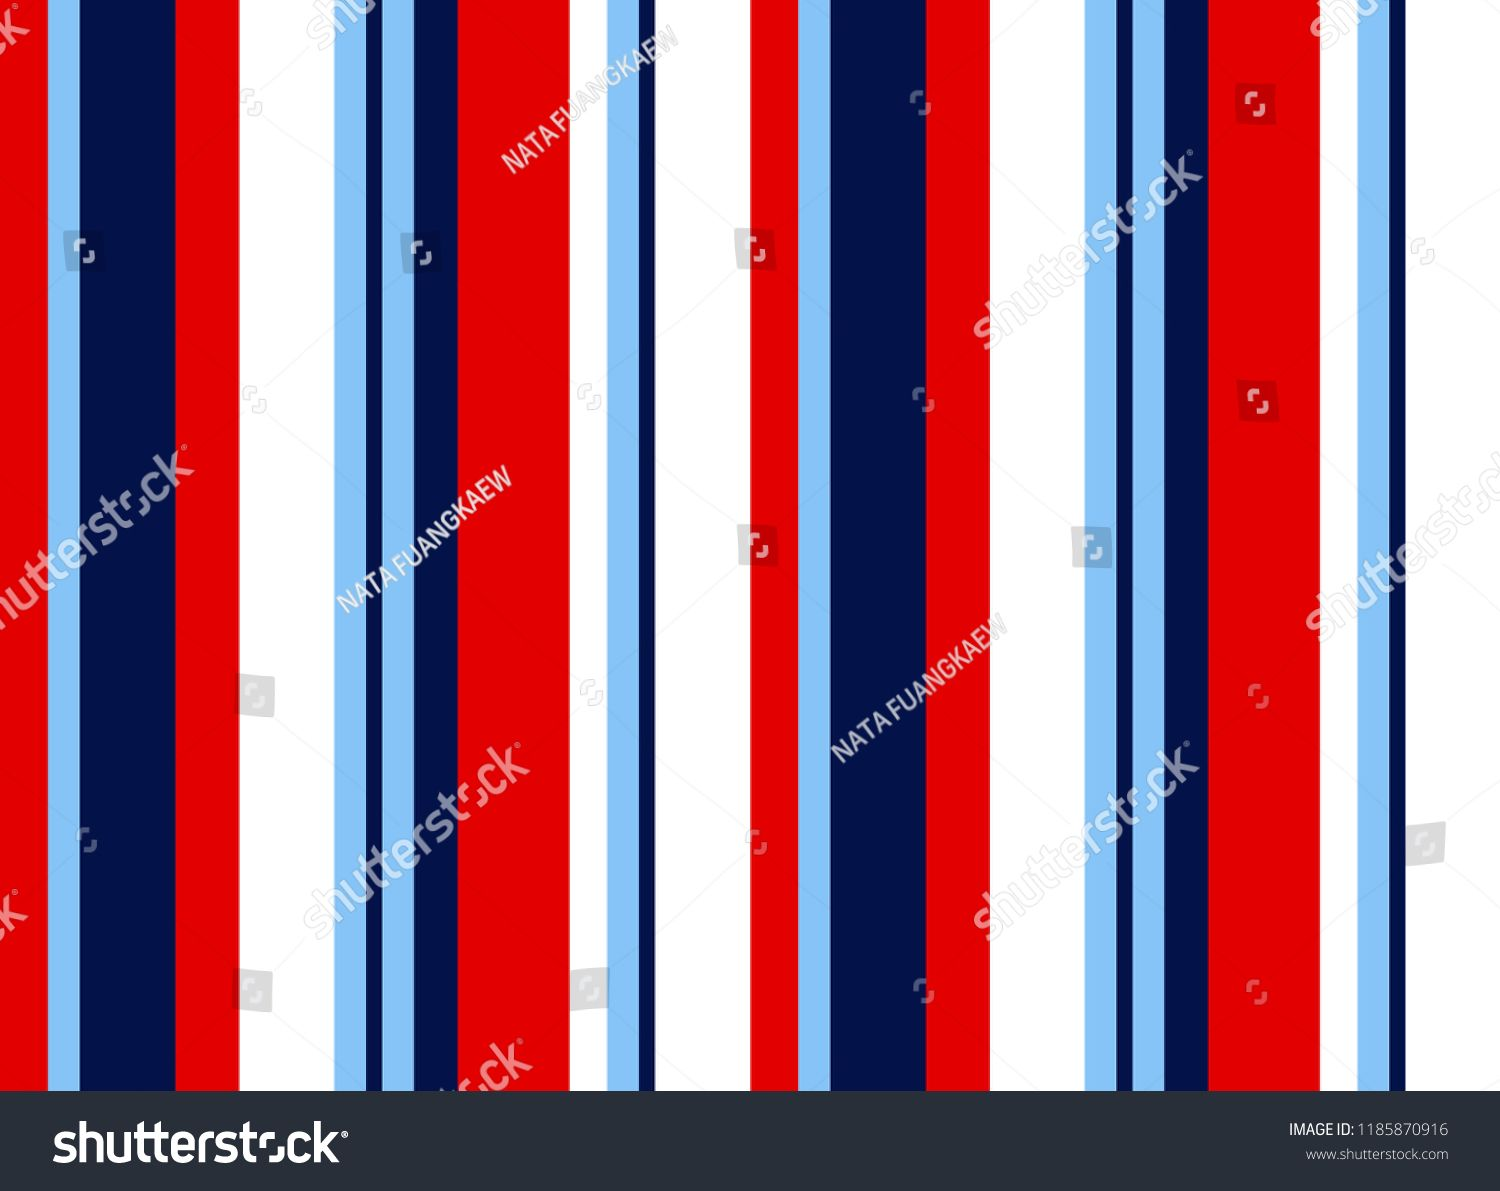 Stripe Seamless Pattern With Blue Red And White Vertical Parallel